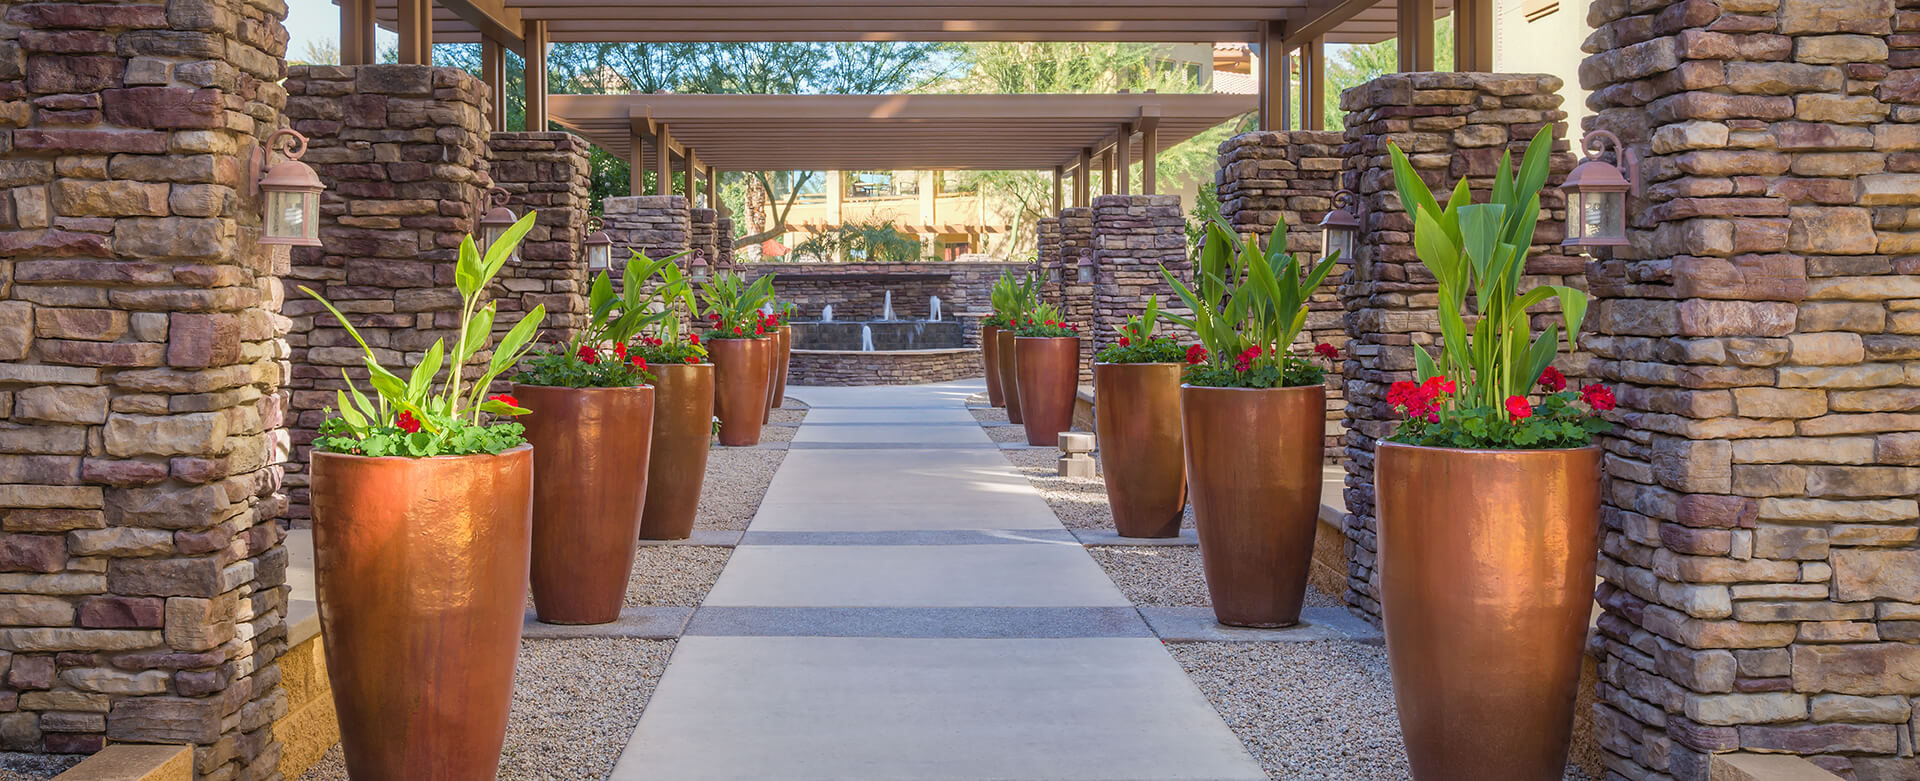 Phoenix Condos - picture of outdoor alleyway with view of water fountain at Toscana of Desert Ridge